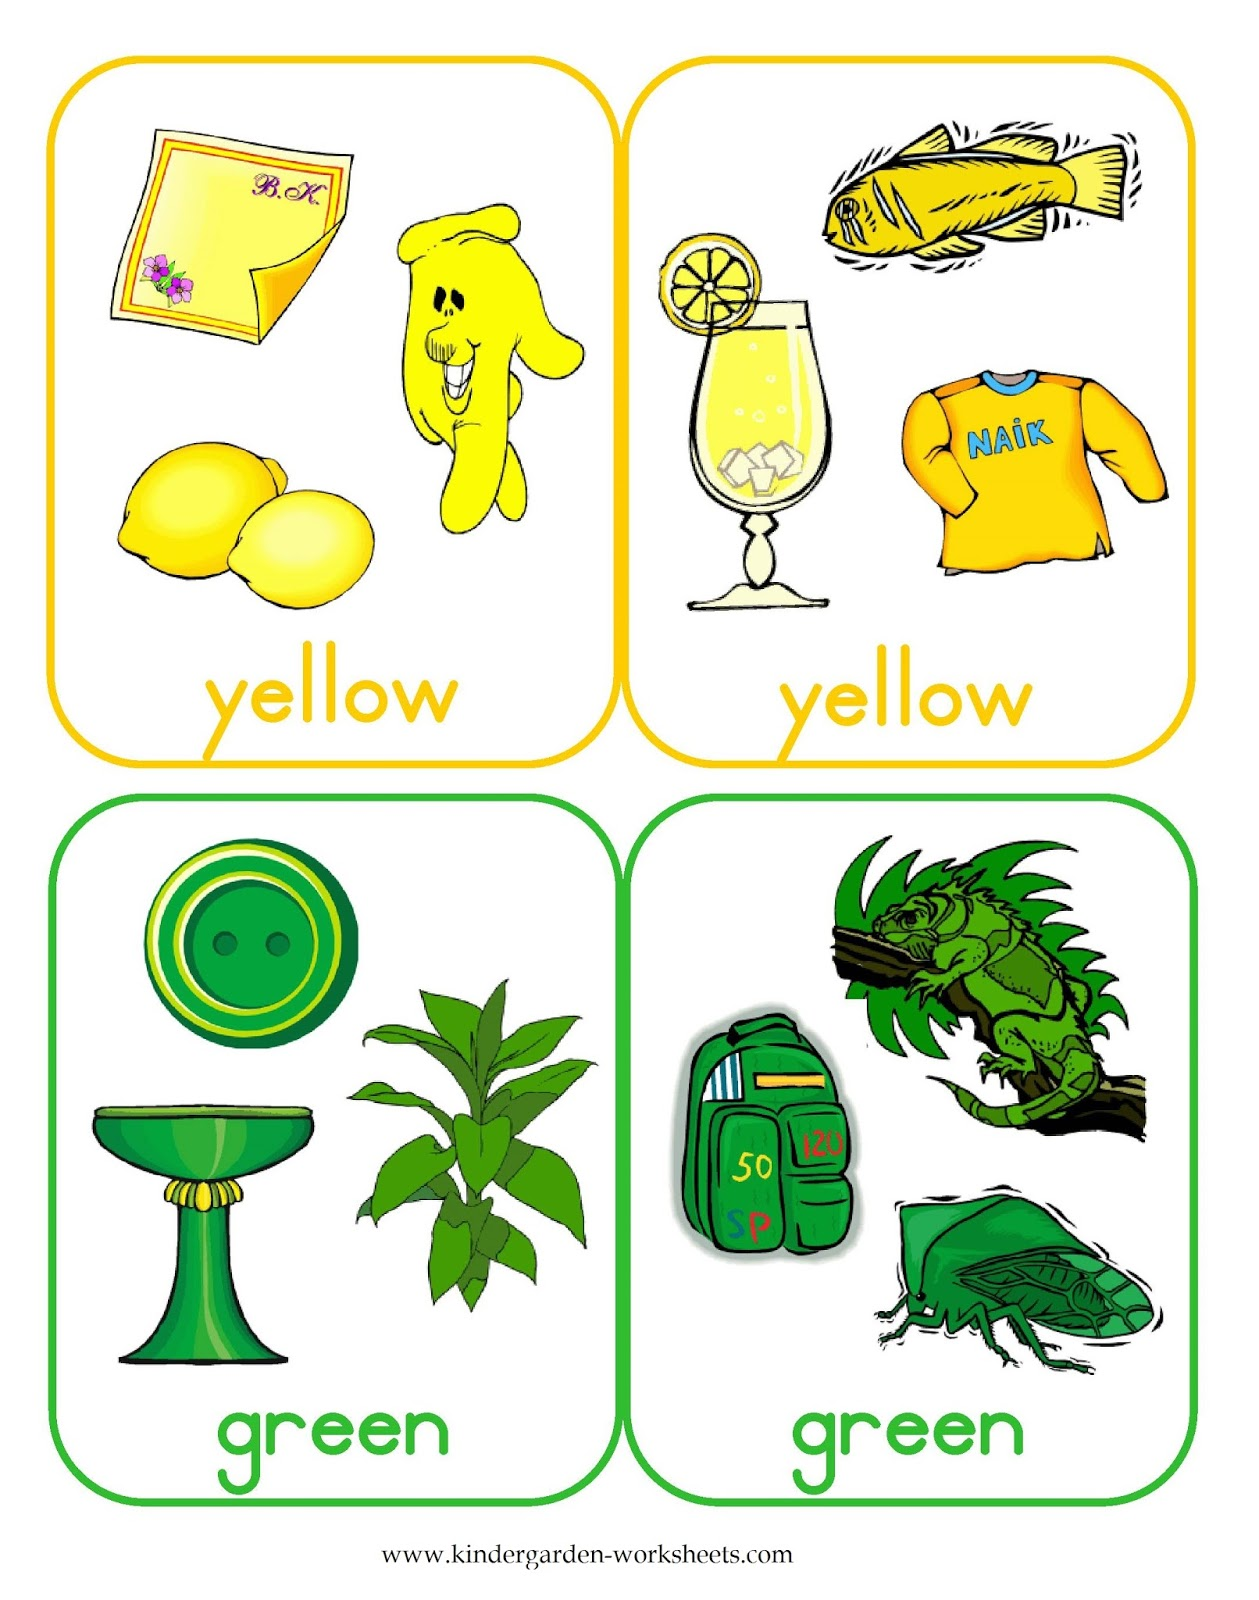 Kindergarten Worksheets: Flashcards - Color Cards